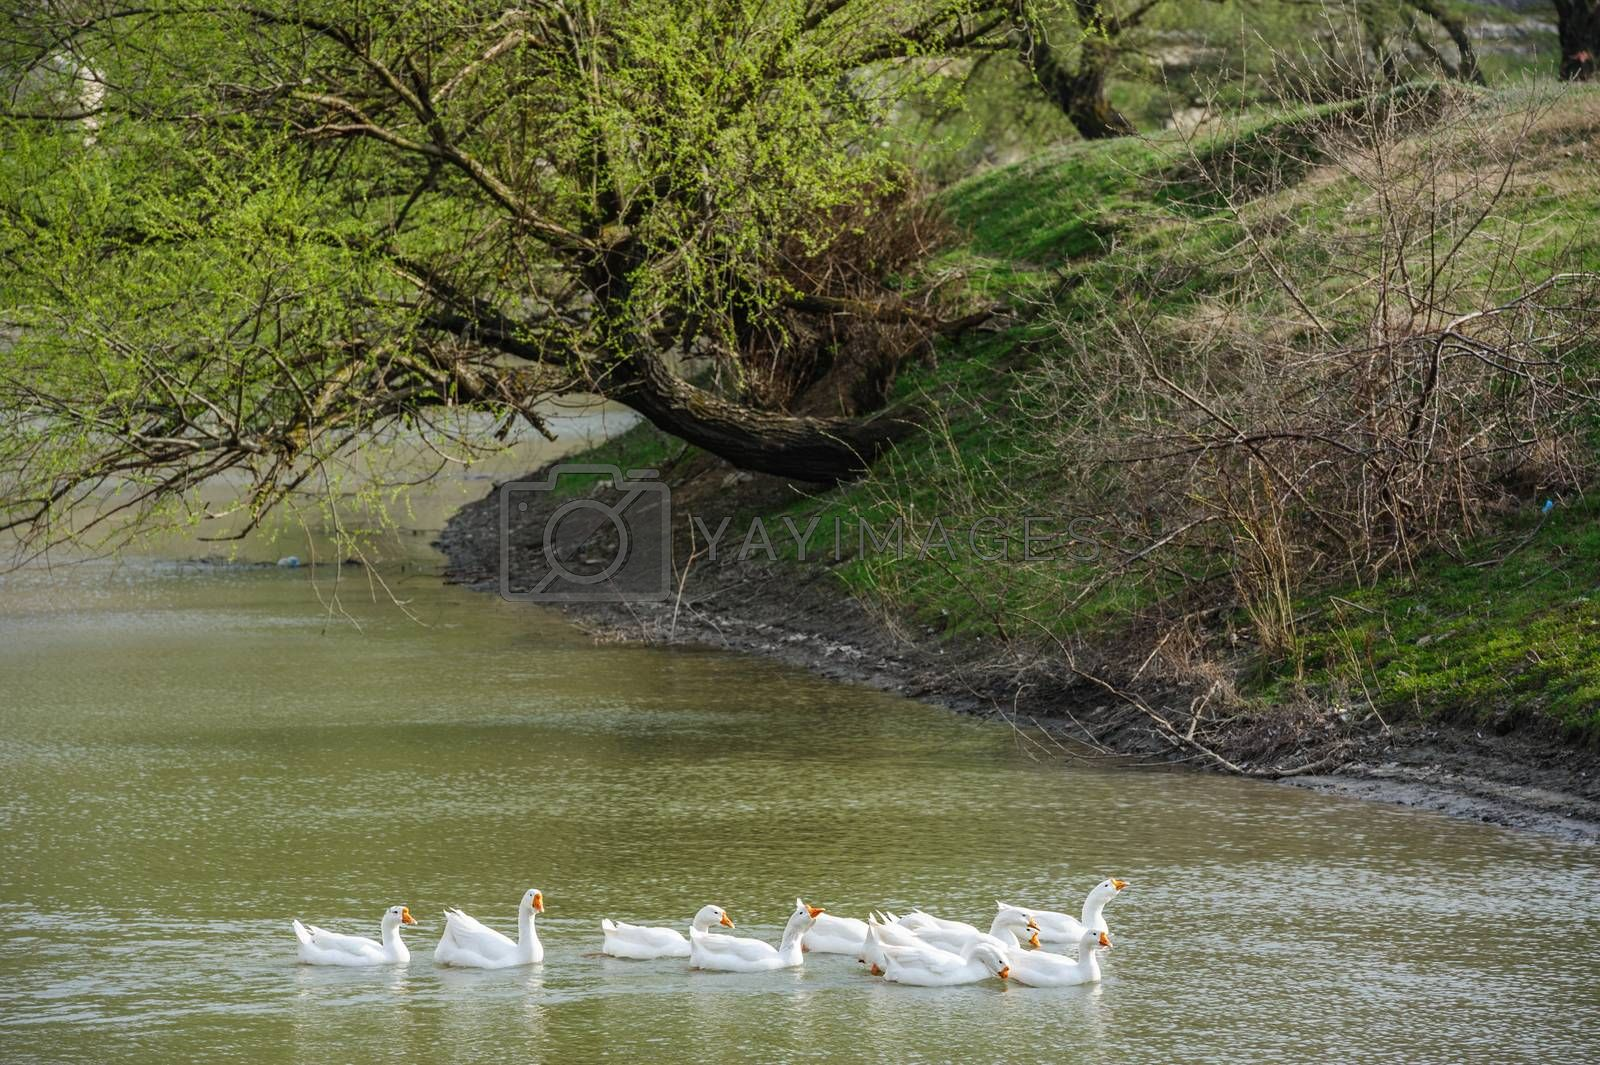 Royalty free image of geese on river by starush